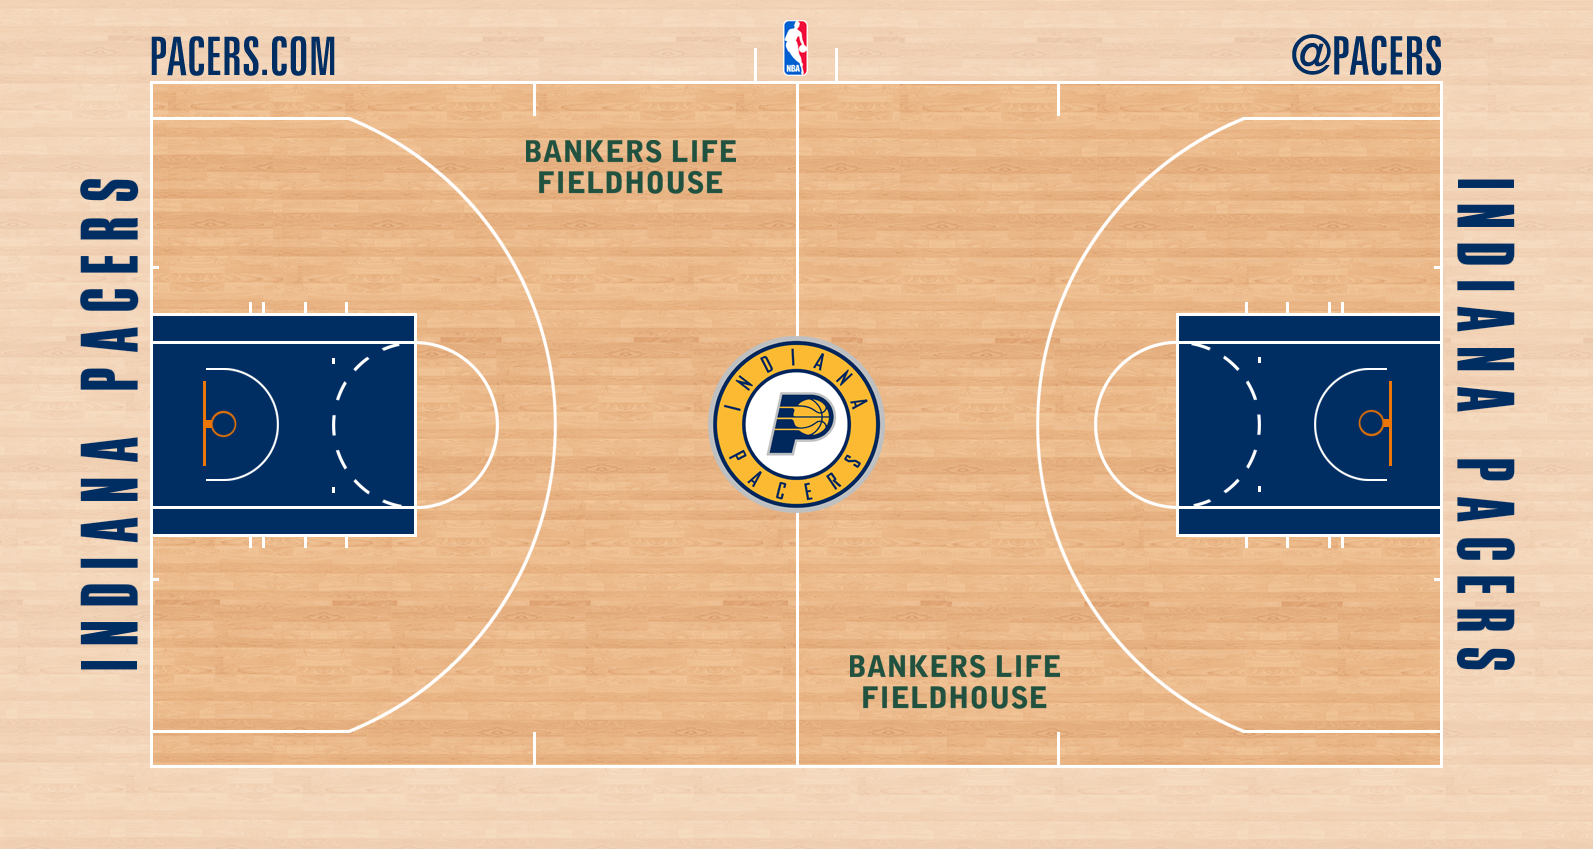 Pacers Logo Png Images & Pictures - Becuo